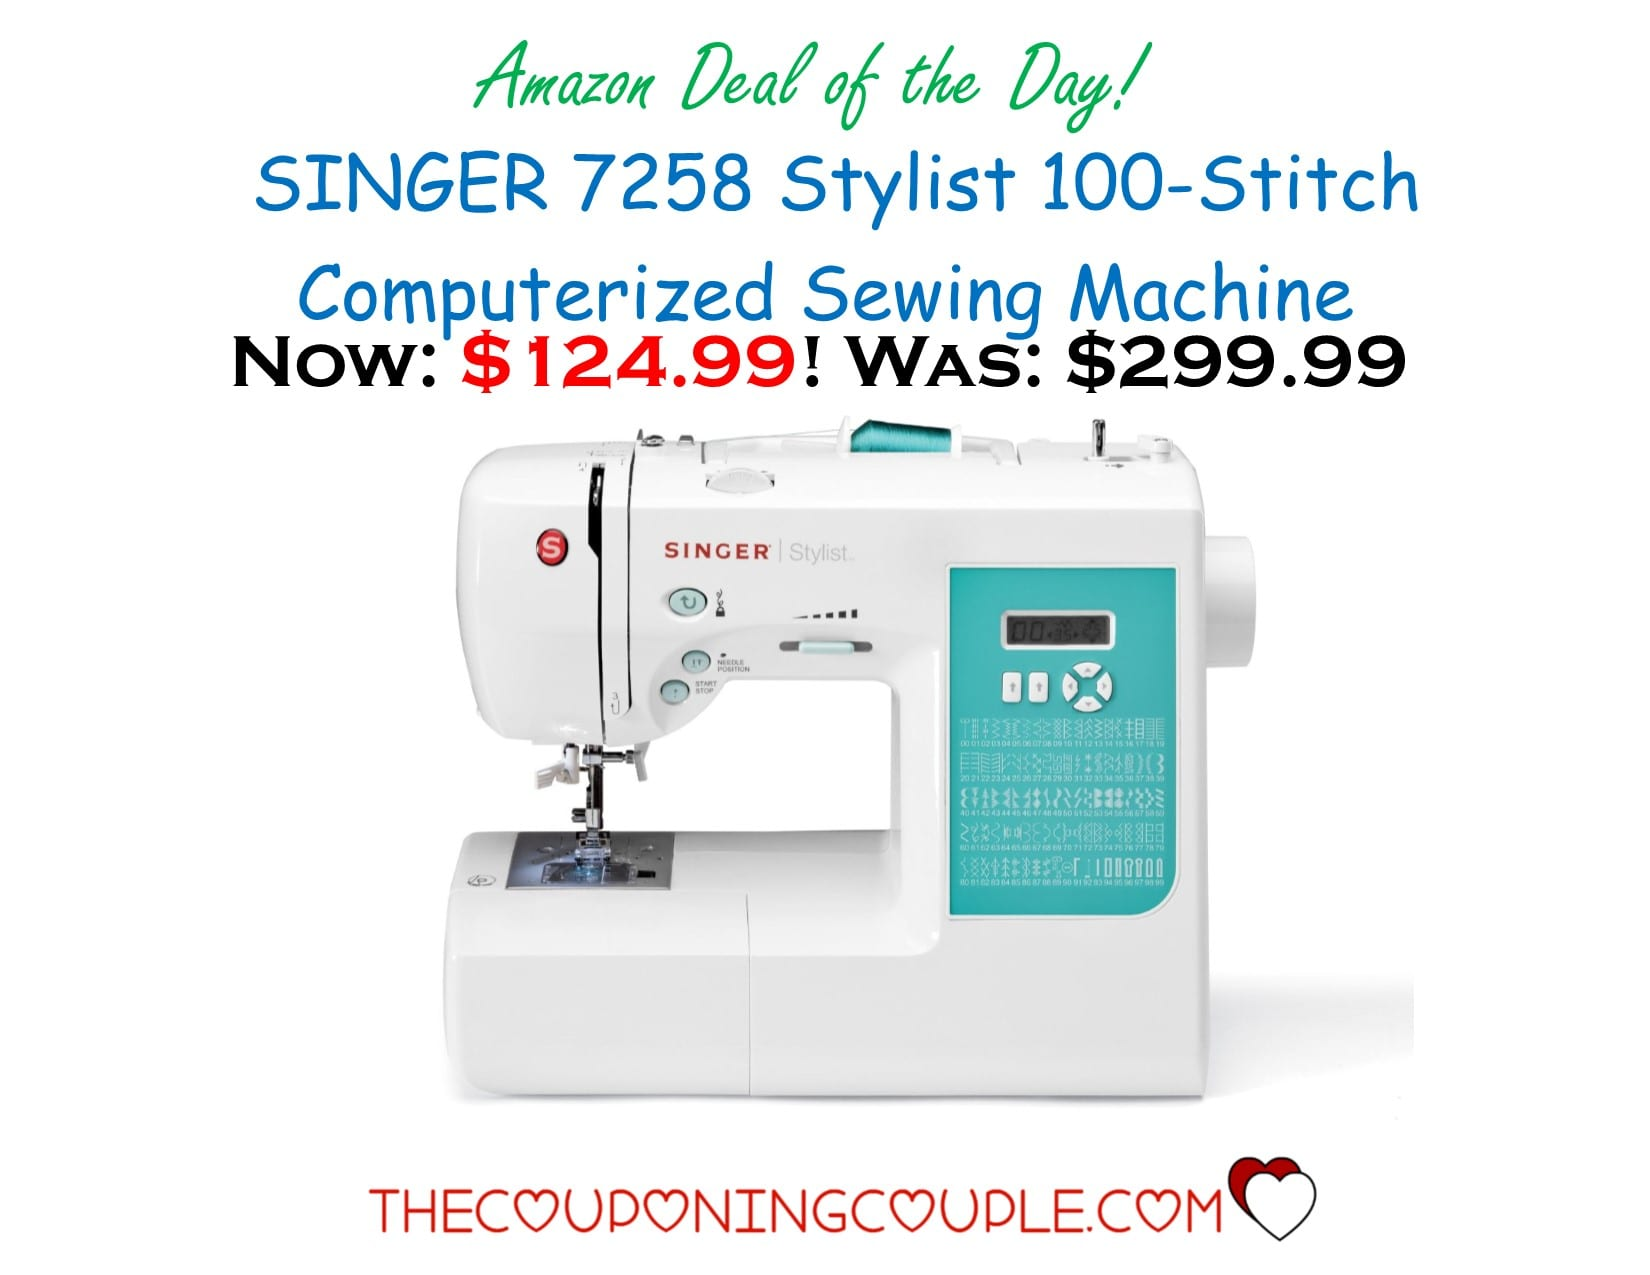 Sewing machine outlet coupons